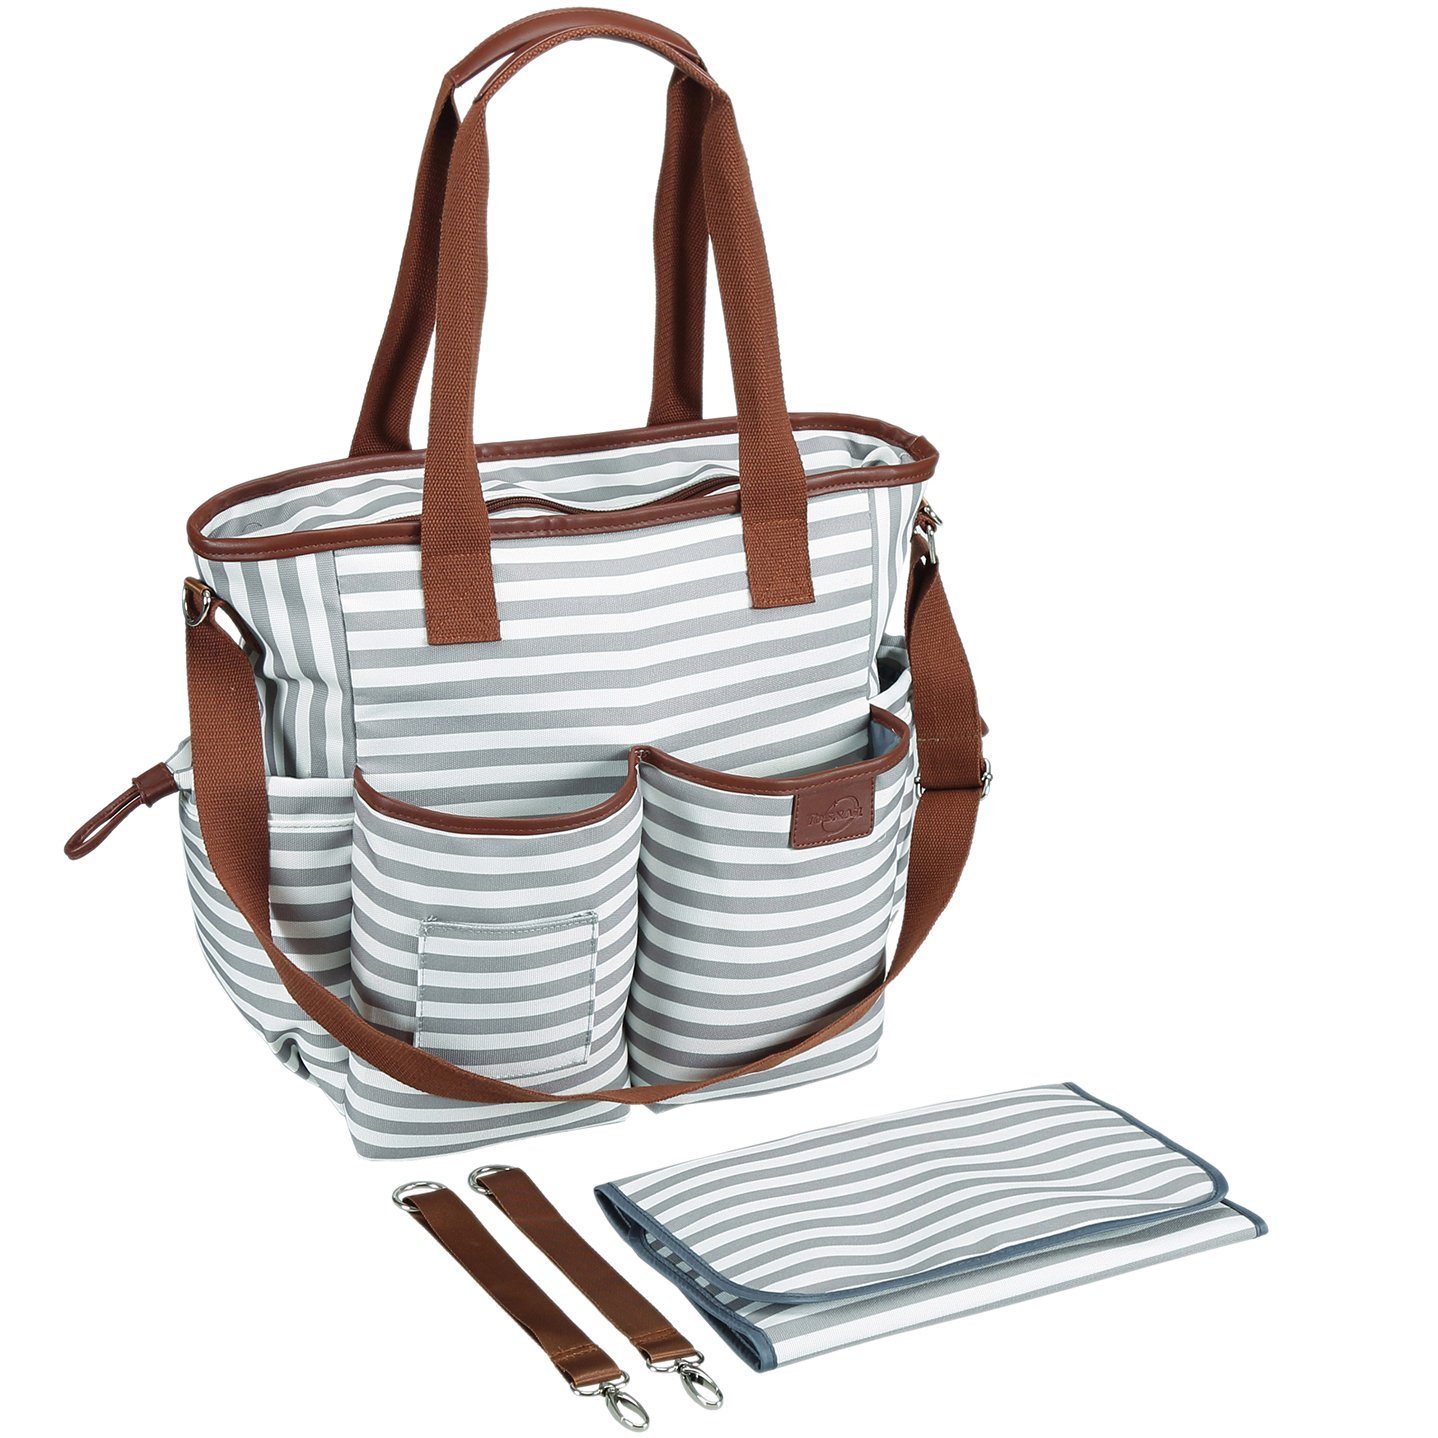 Tosnail Weekender Tote Diaper Bag with Portable Changing Mat - Gray & White Stripes